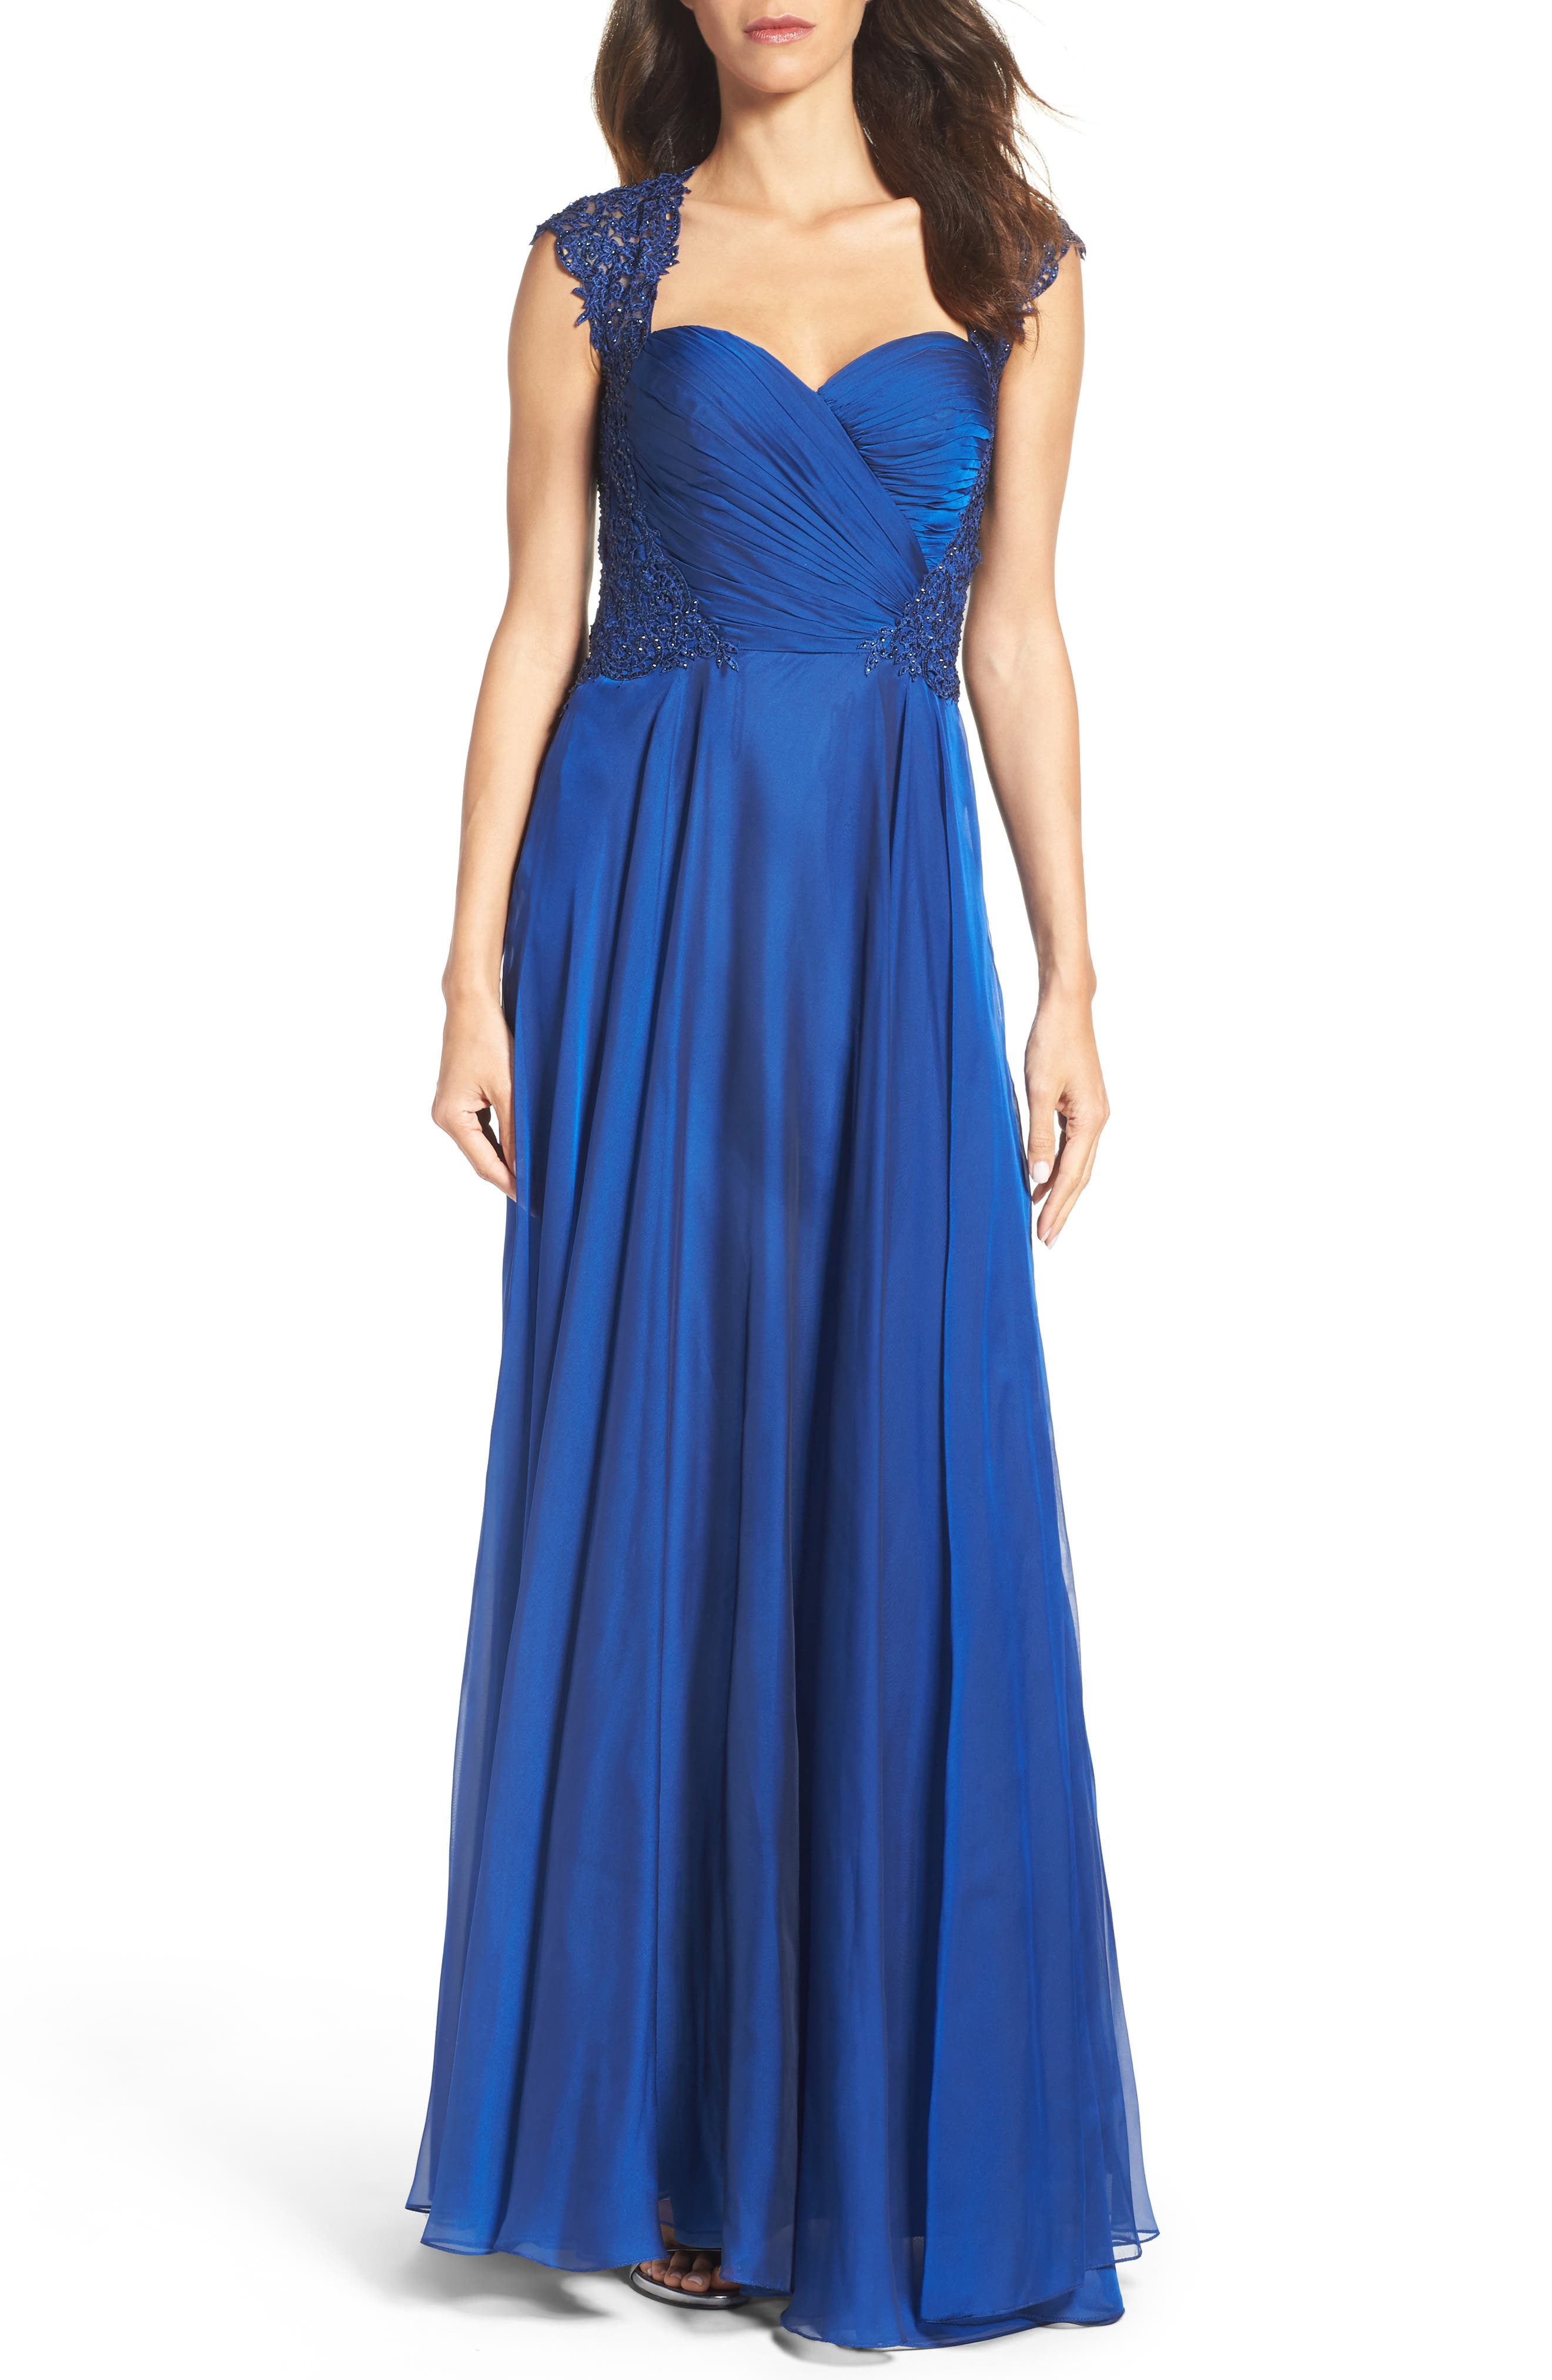 Ruched Chiffon Gown,                             Main thumbnail 1, color,                             Marine Blue